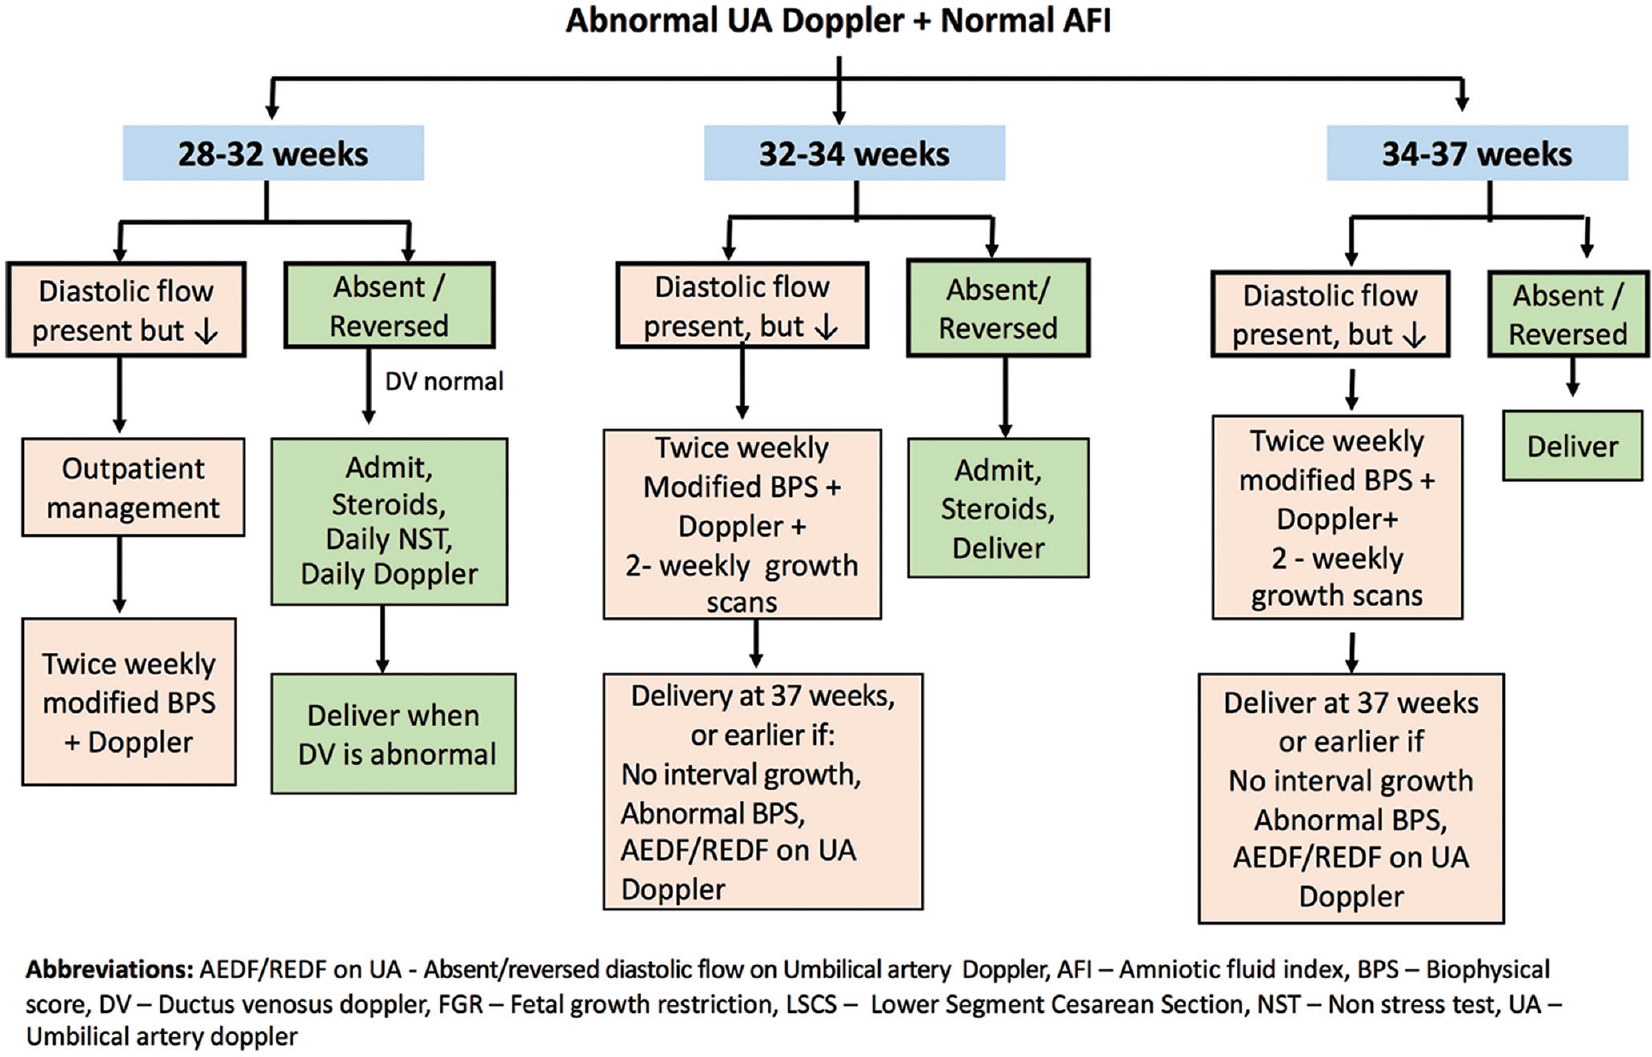 Management of intrauterine growth restriction david ls cherian ag figure 5 management of intrauterine growth restriction with abnormal umbilical artery doppler and normal amniotic fluid index nvjuhfo Choice Image